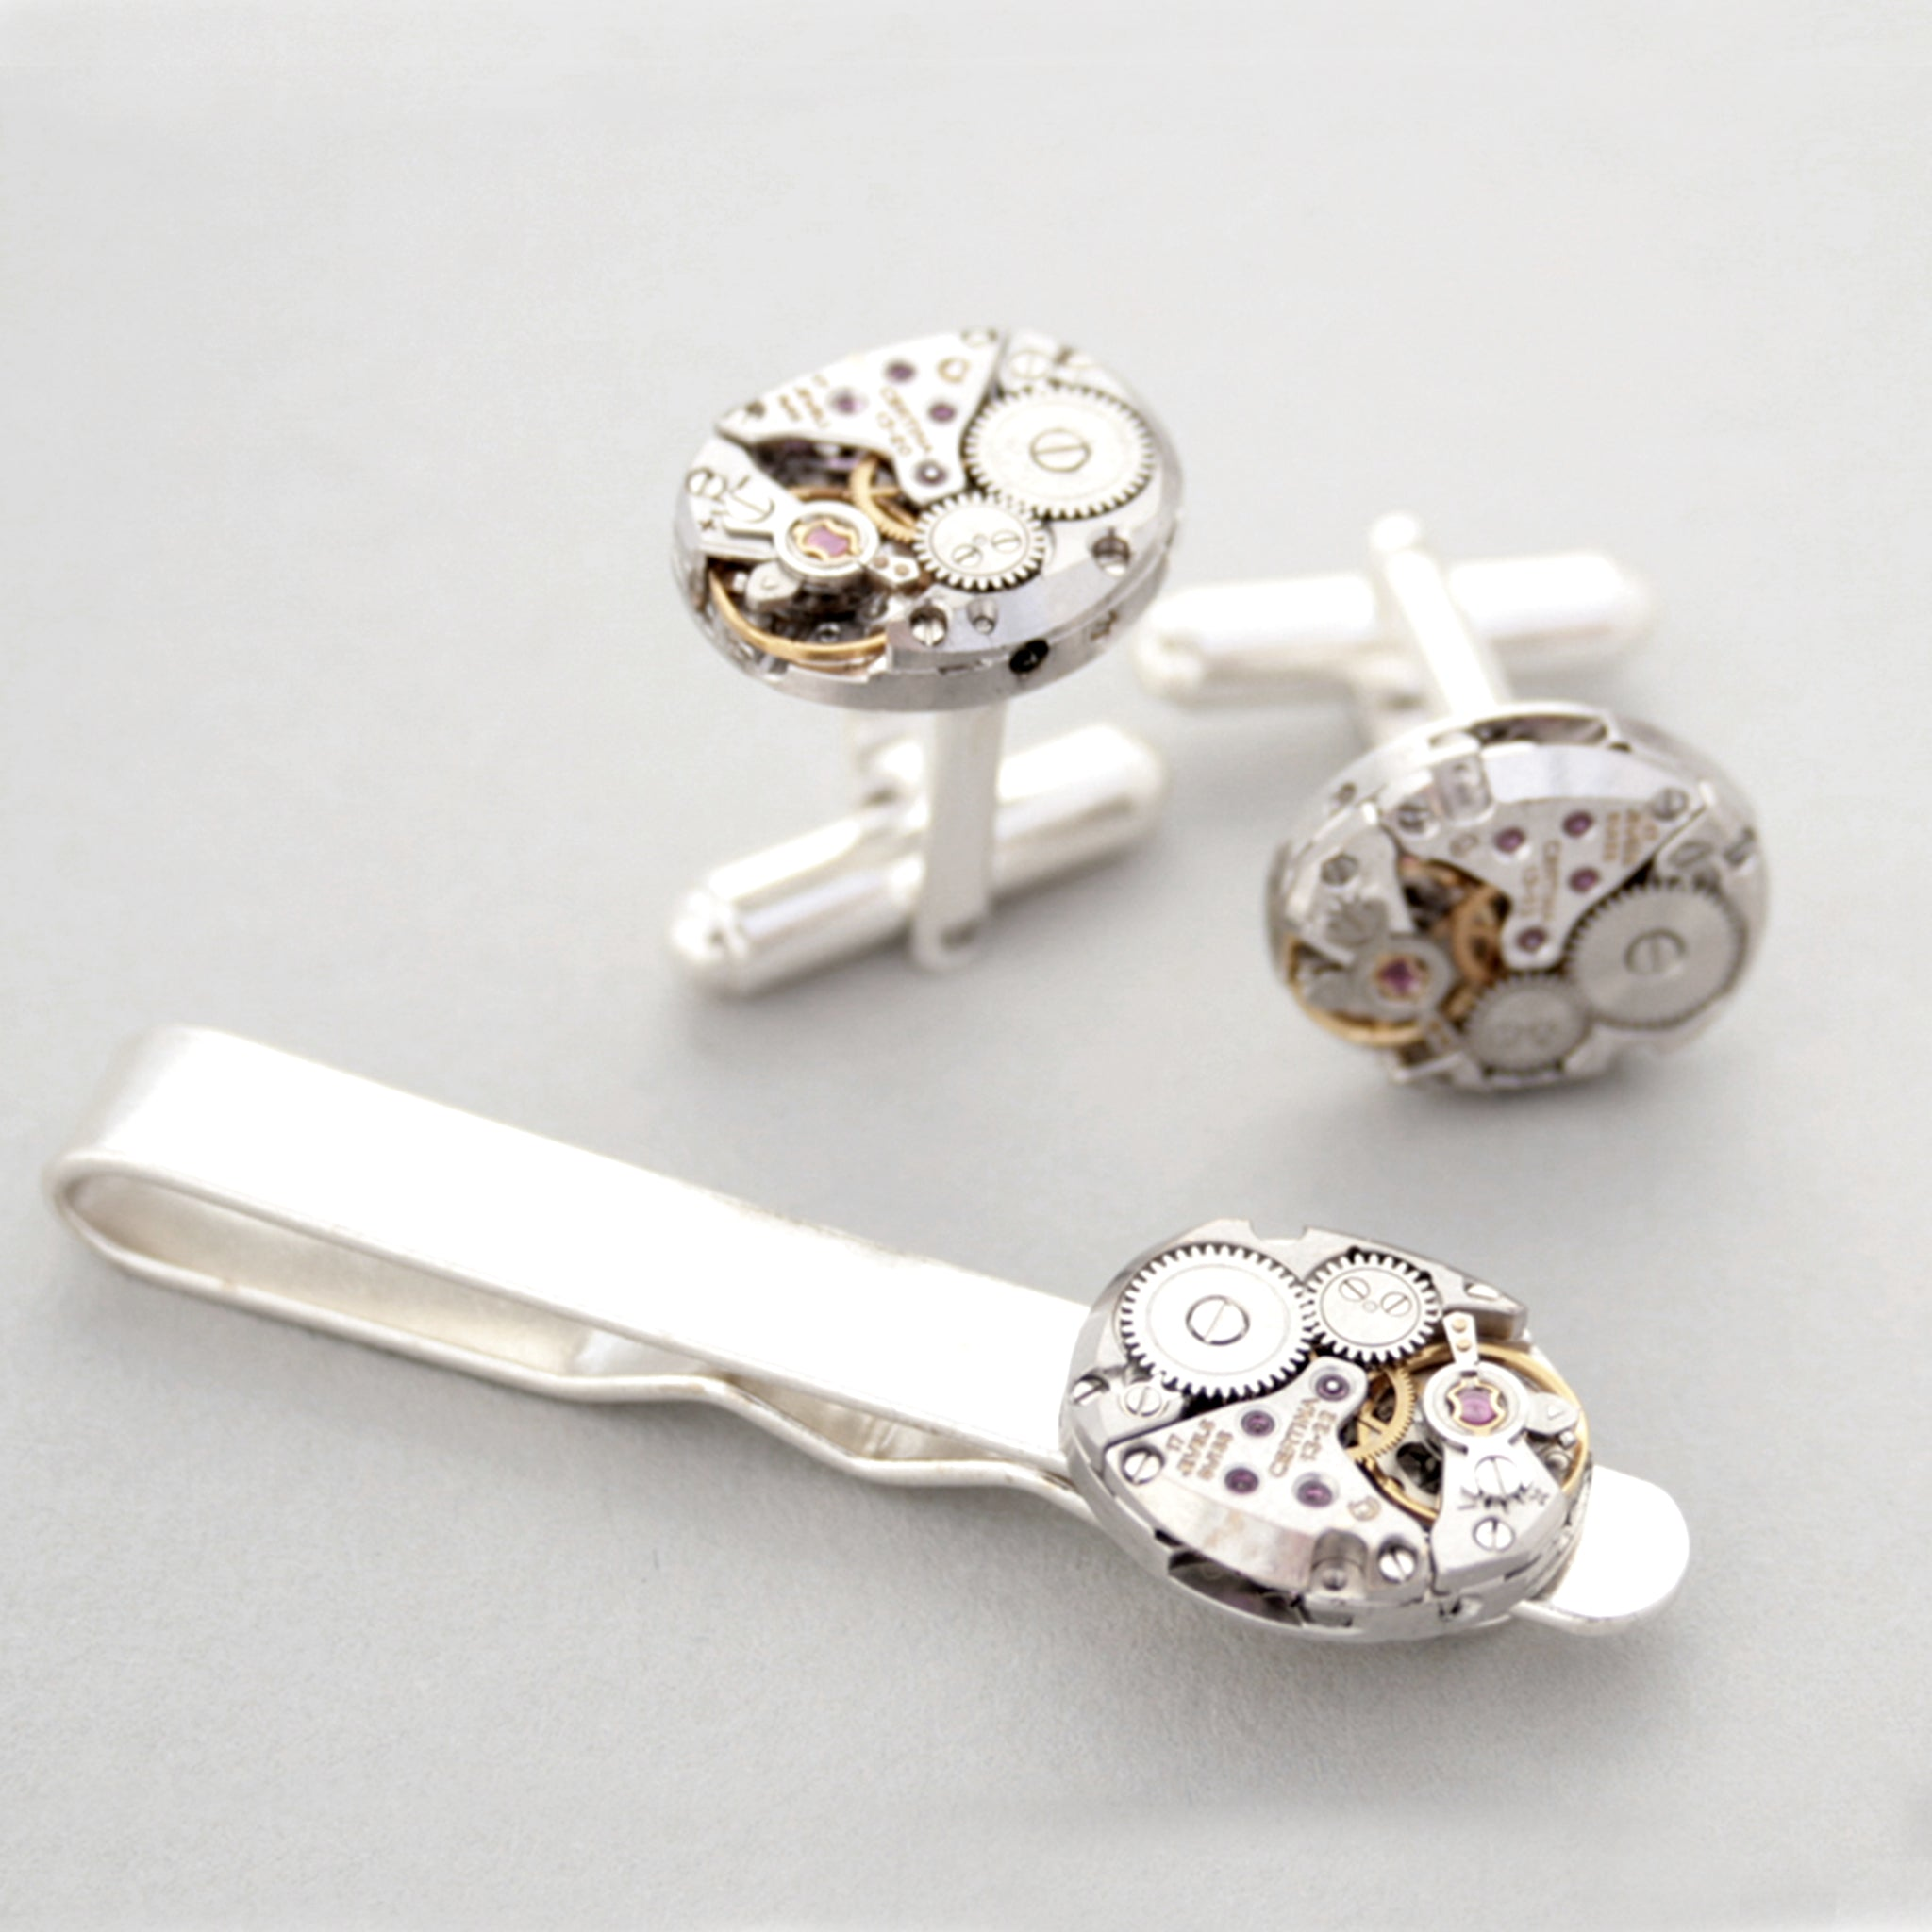 Sterling Cufflinks and Tie Clip Set